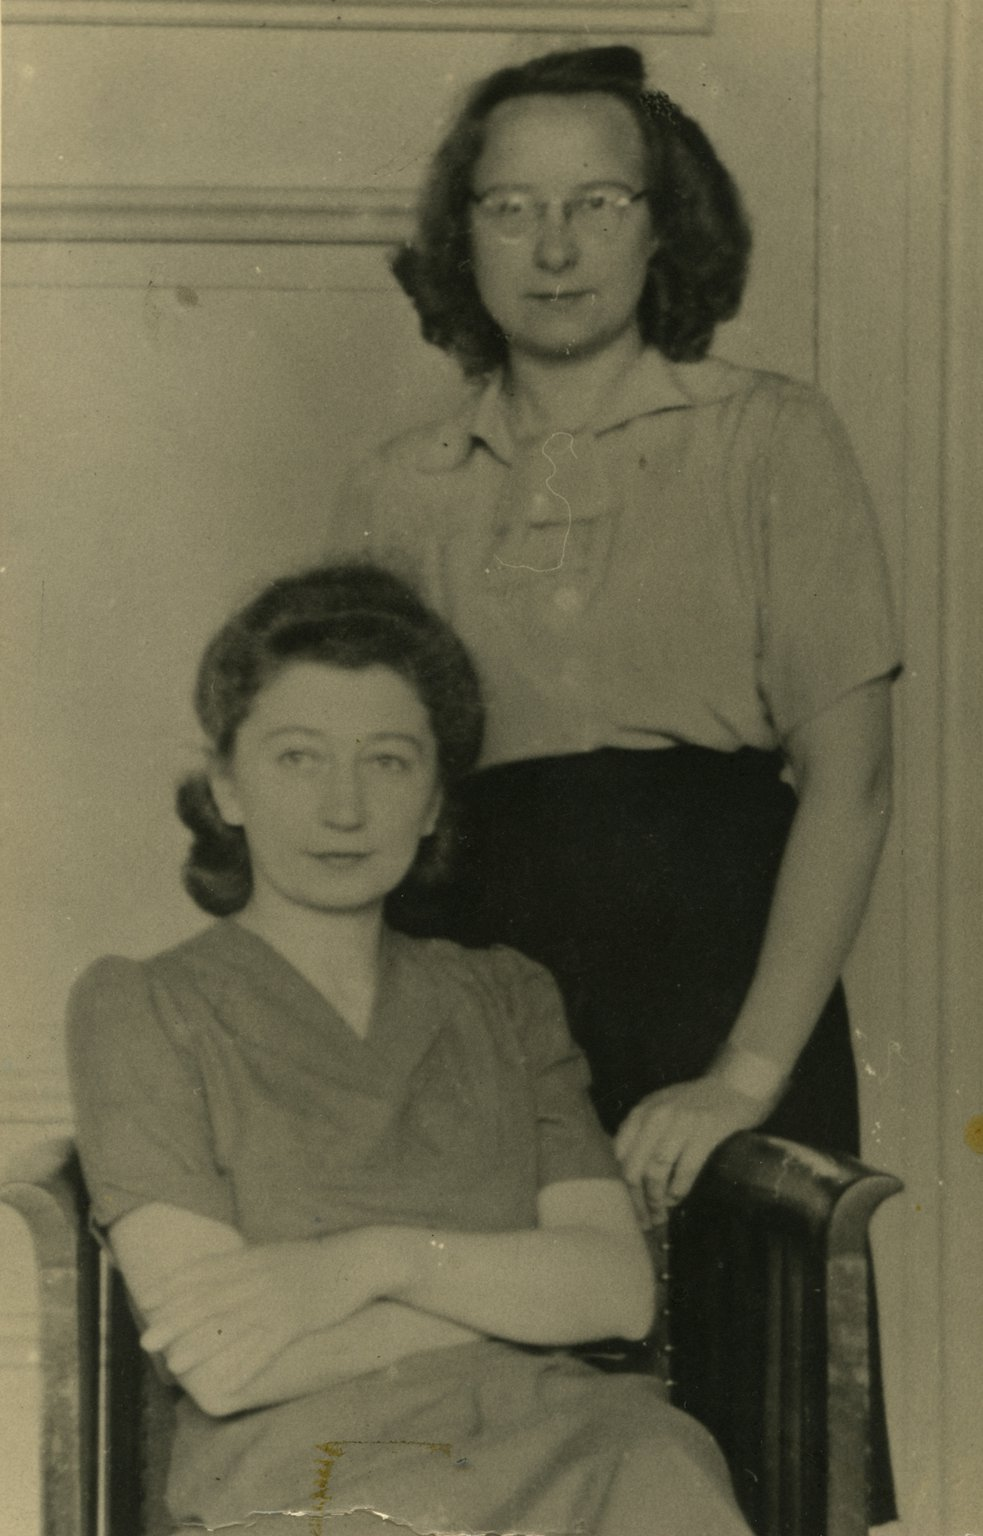 Miep Gies (left) and Bep Voskuijl in the front office, October 1945.